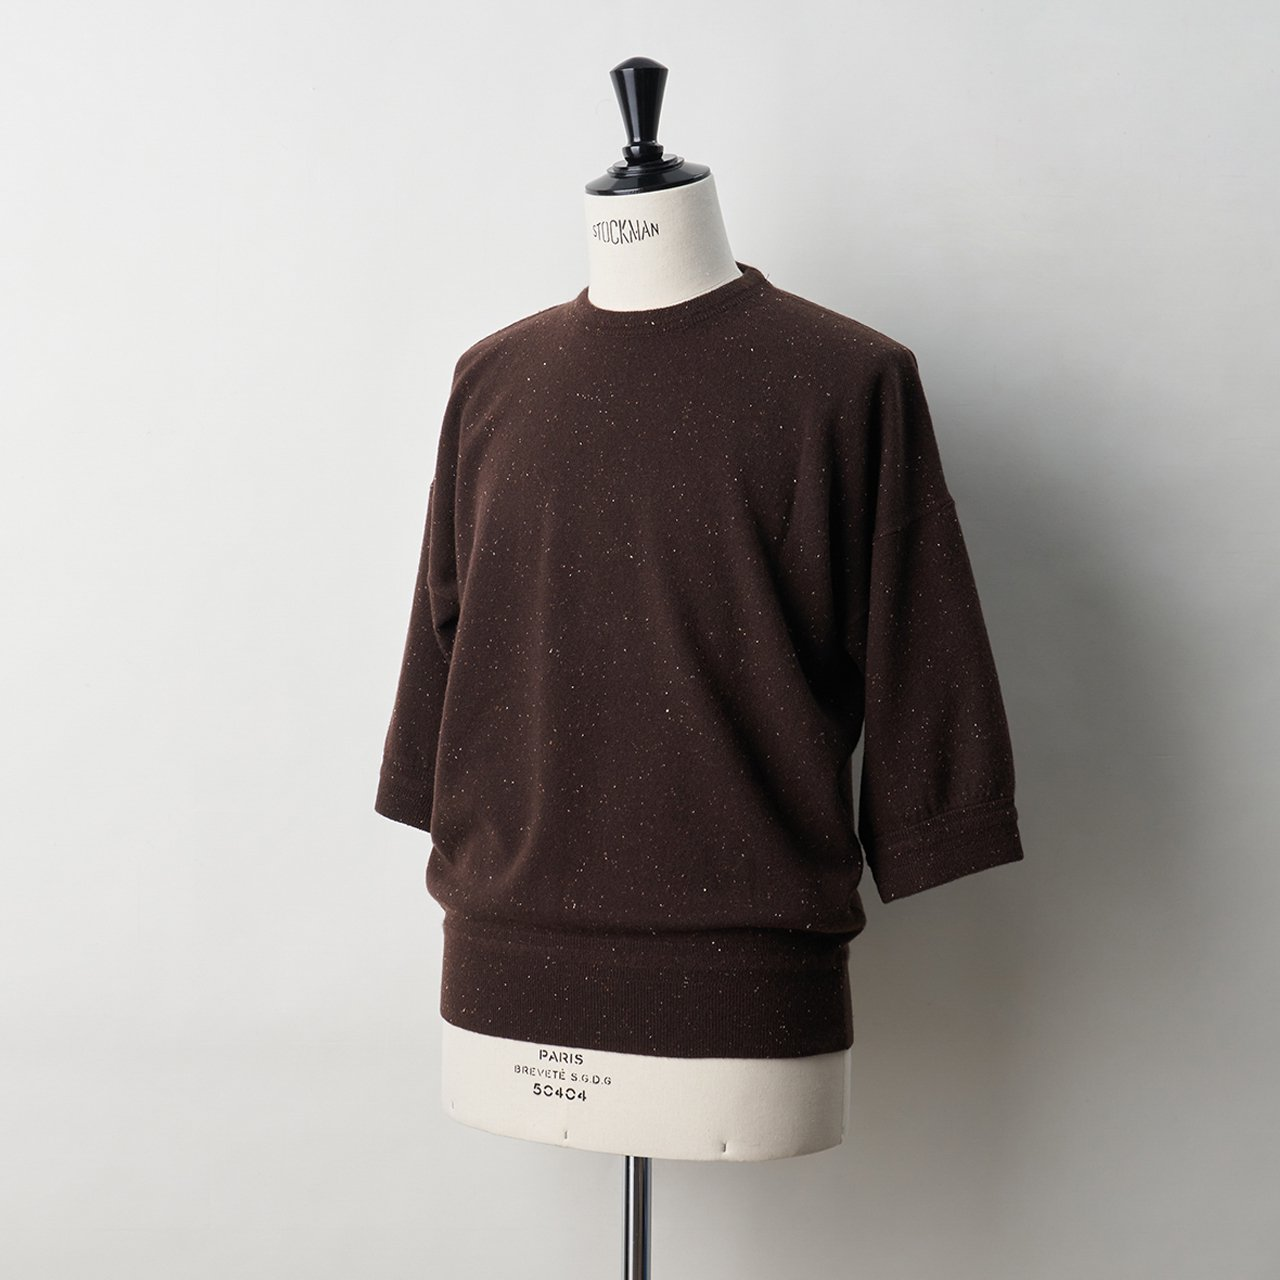 CASHMERE STARDUST BoyFriend TOPS<BR>ALMOND CHOCOLATE